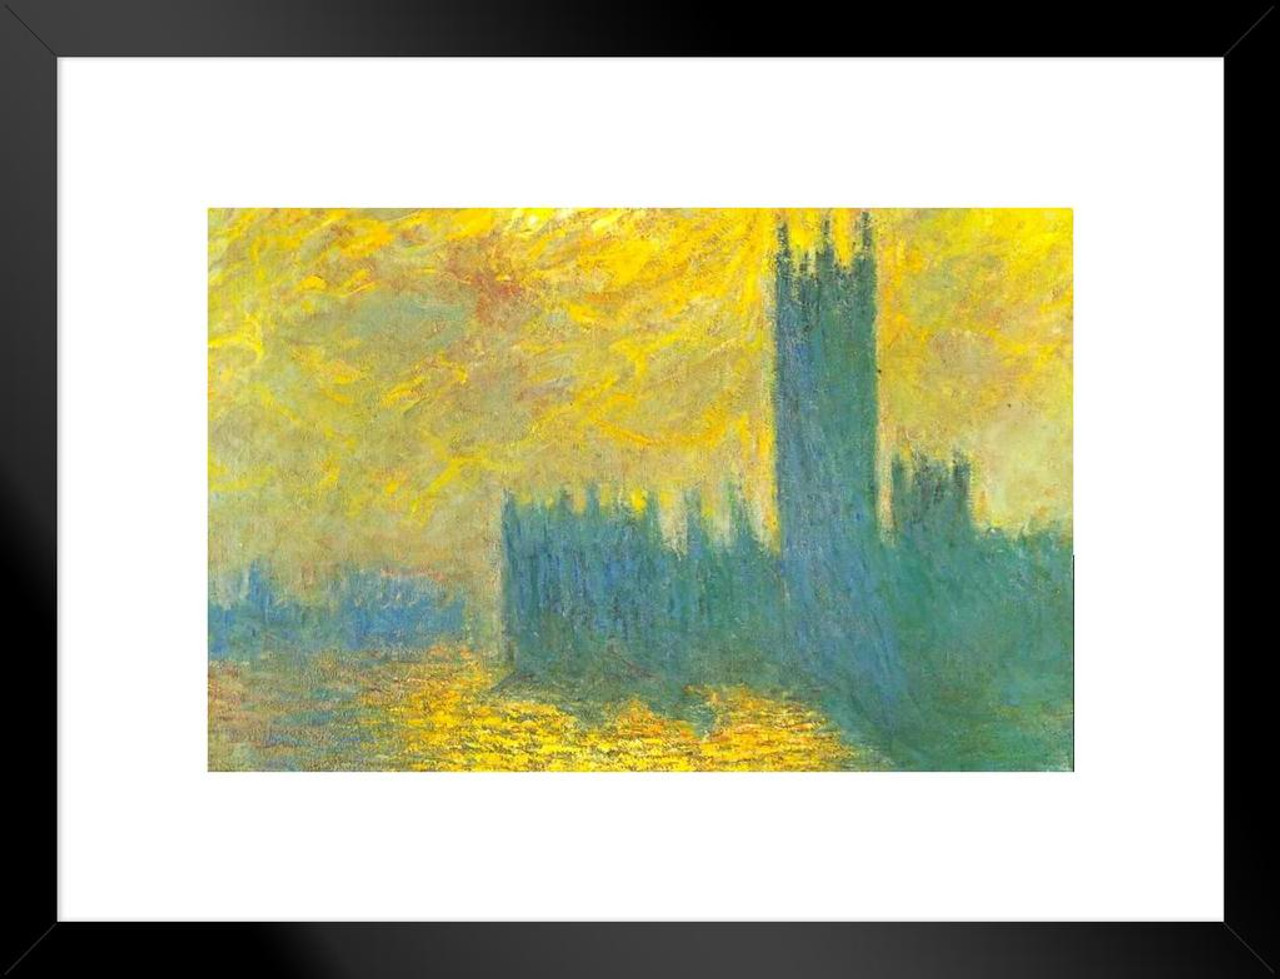 claude monet HAYSTACK AT GIVERNY 24X36 fine art poster FRENCH IMPRESSIONIST